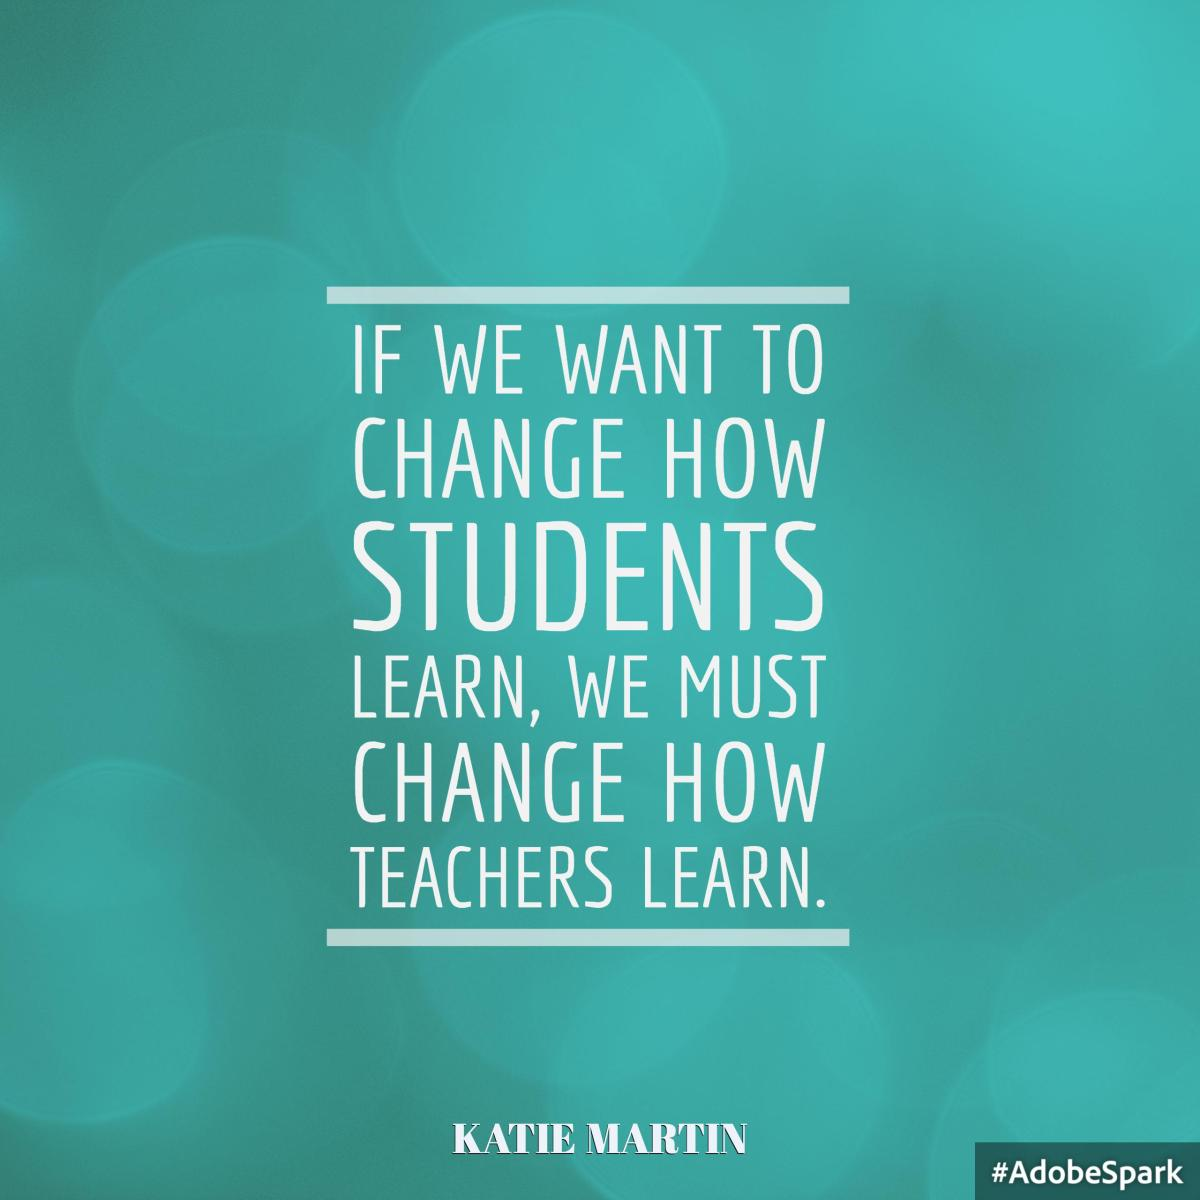 Image result for if we want to change how student learns katie martin